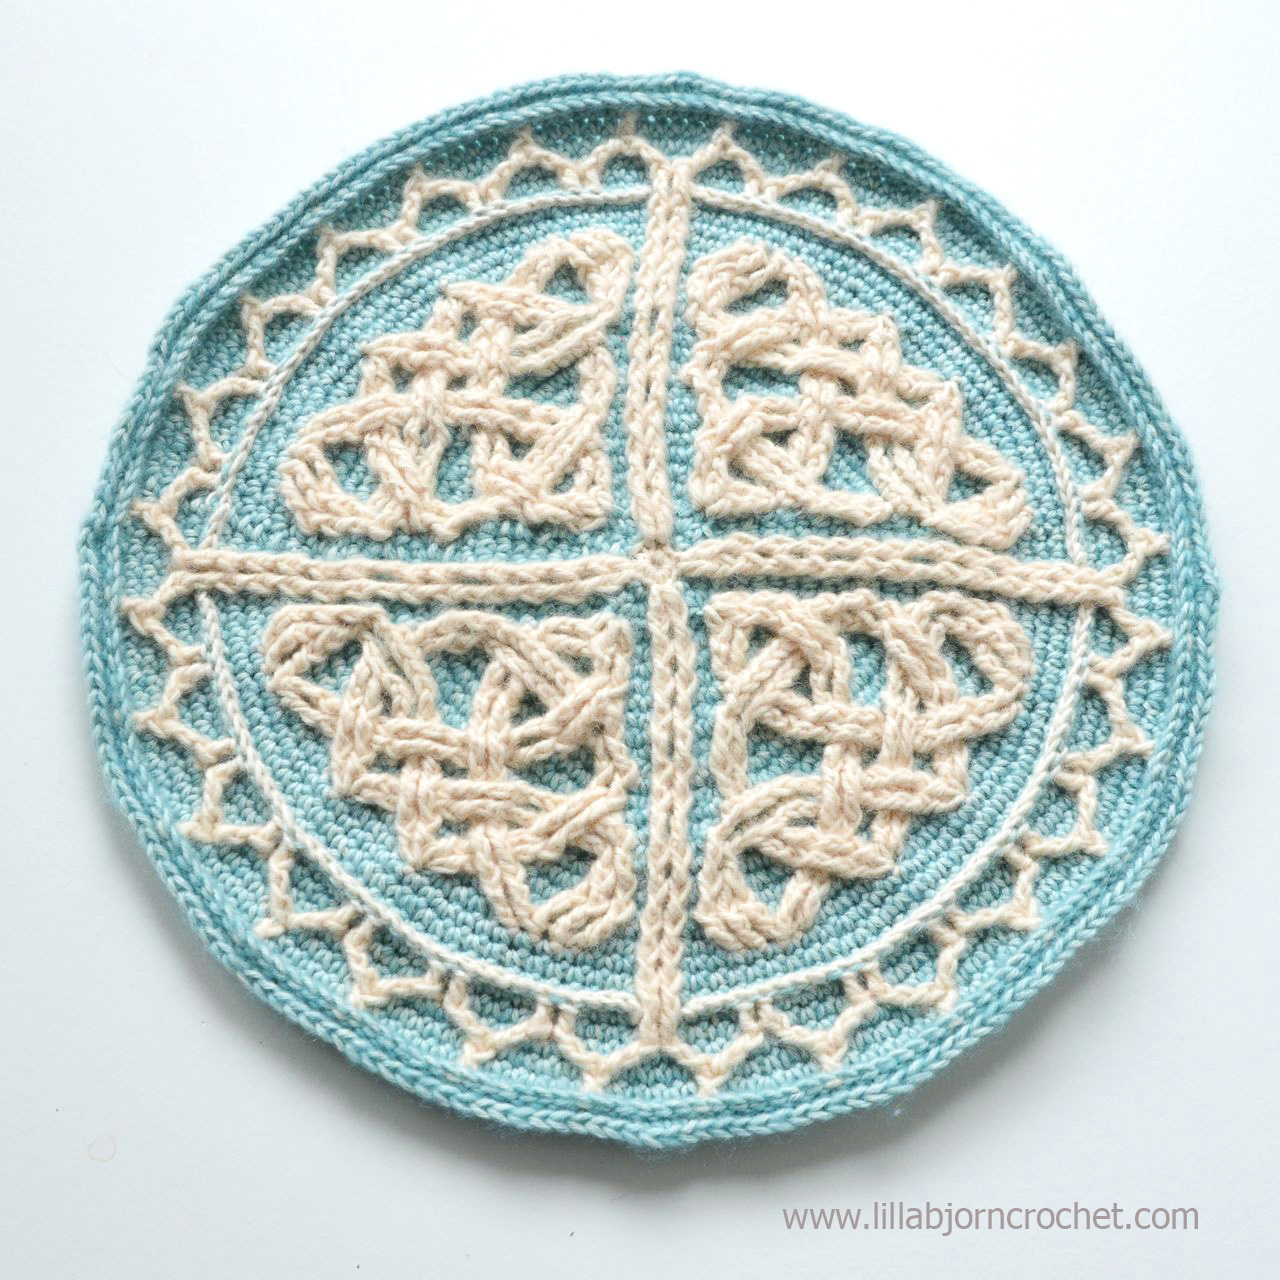 Celtic Cabled Mandala pattern can be used to make a round purse, chair pad, table decoration, wall haning and pillow throw. You name it! Original design by Lilla Bjorn Crochet